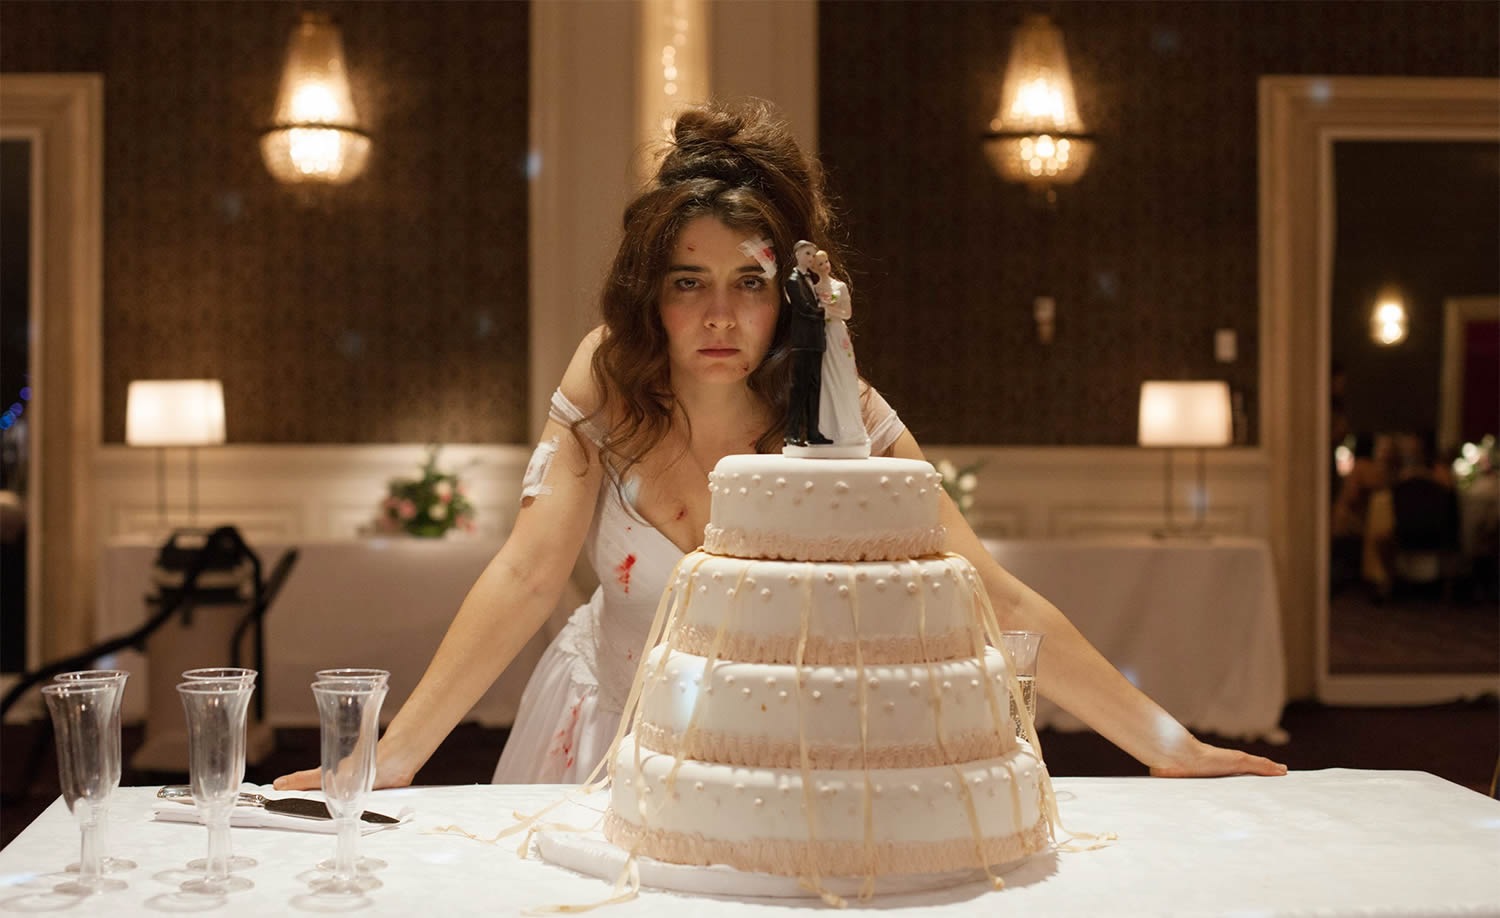 bride in bloody wedding dress and cake. wild tales